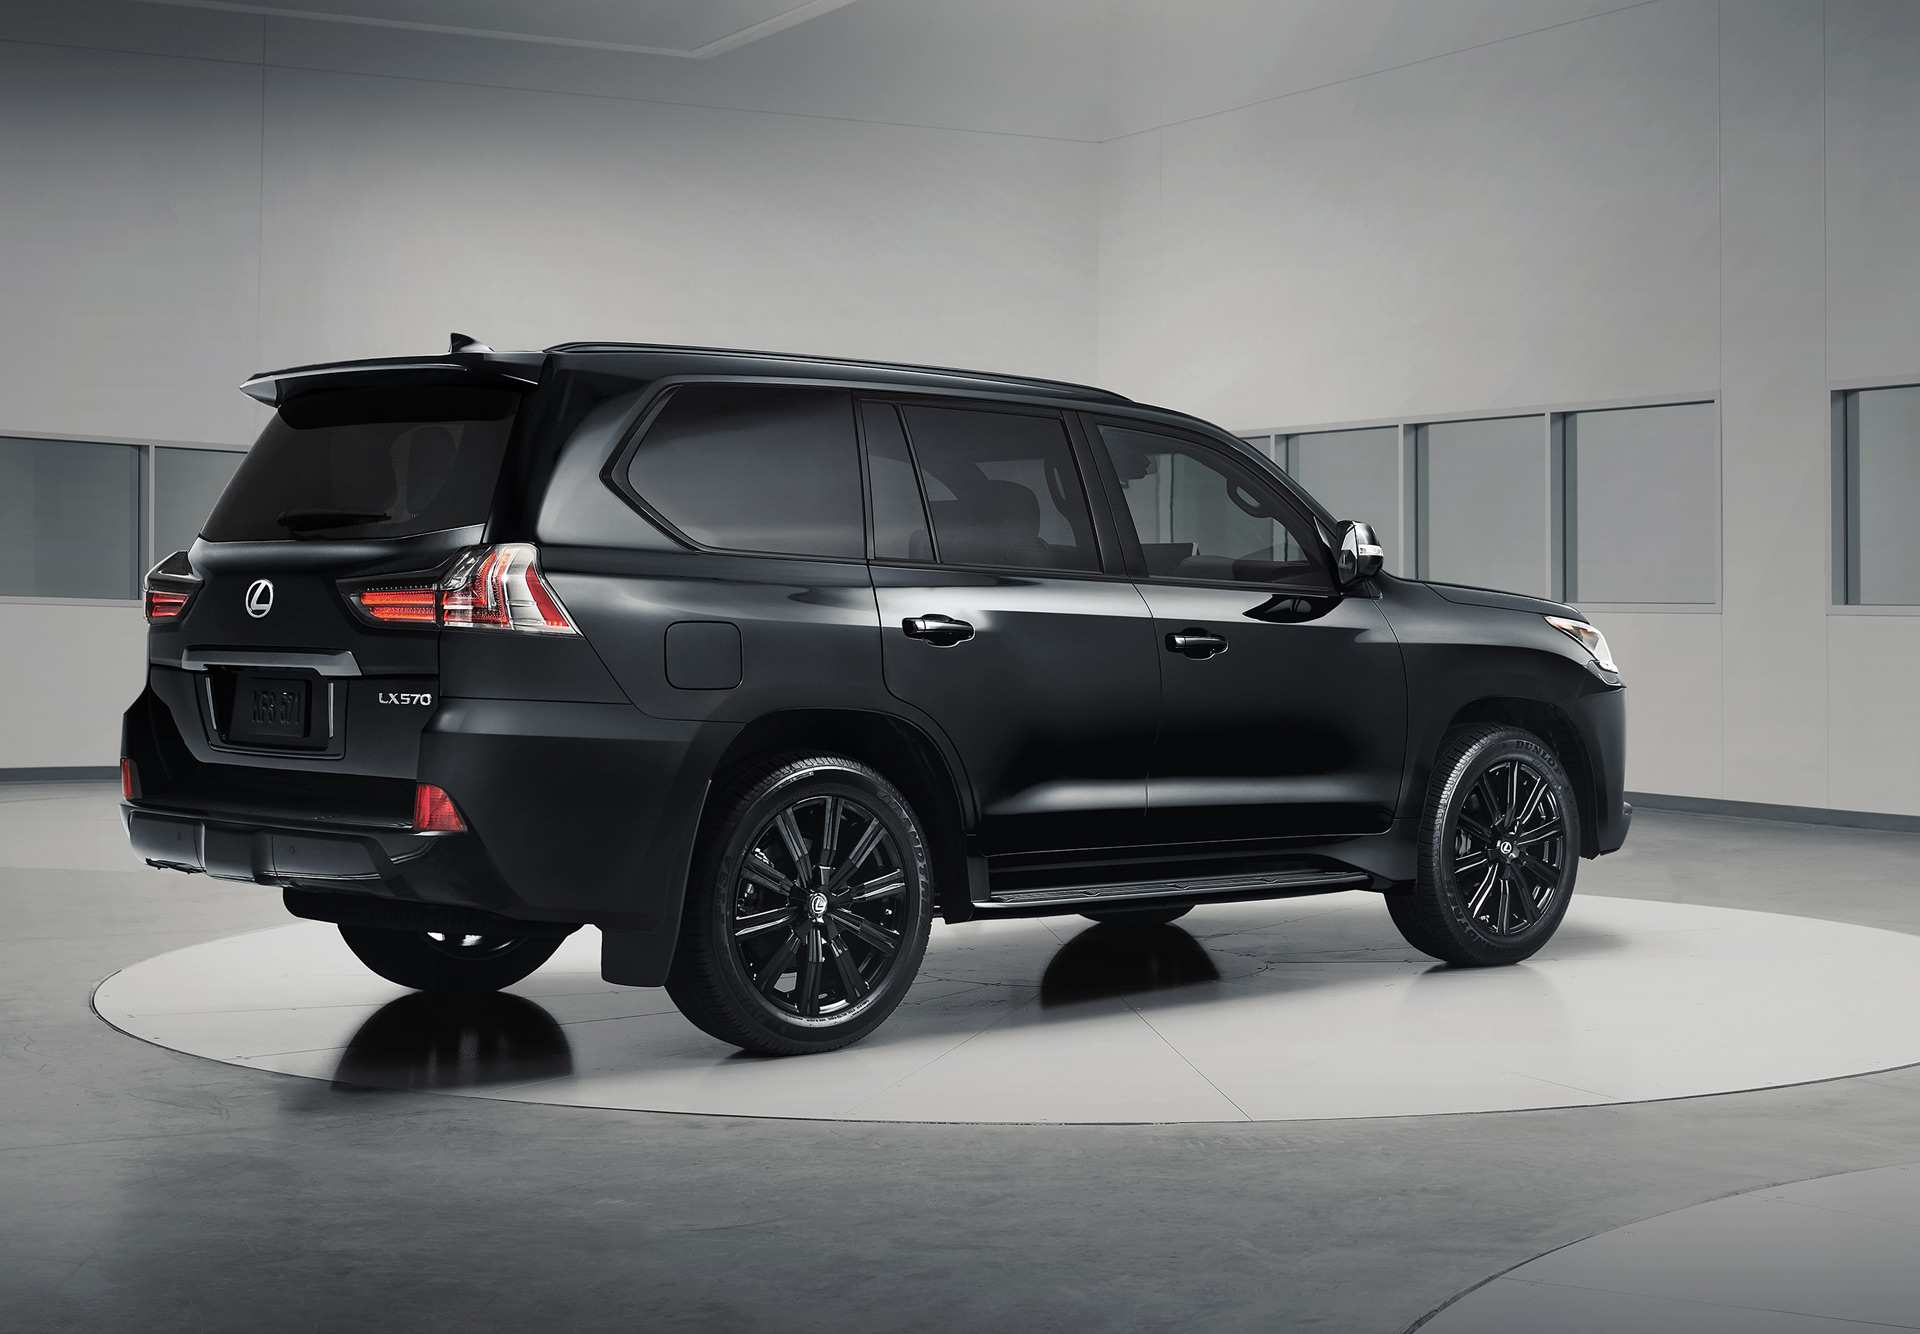 75 Best 2020 Lexus Lx 570 Ratings